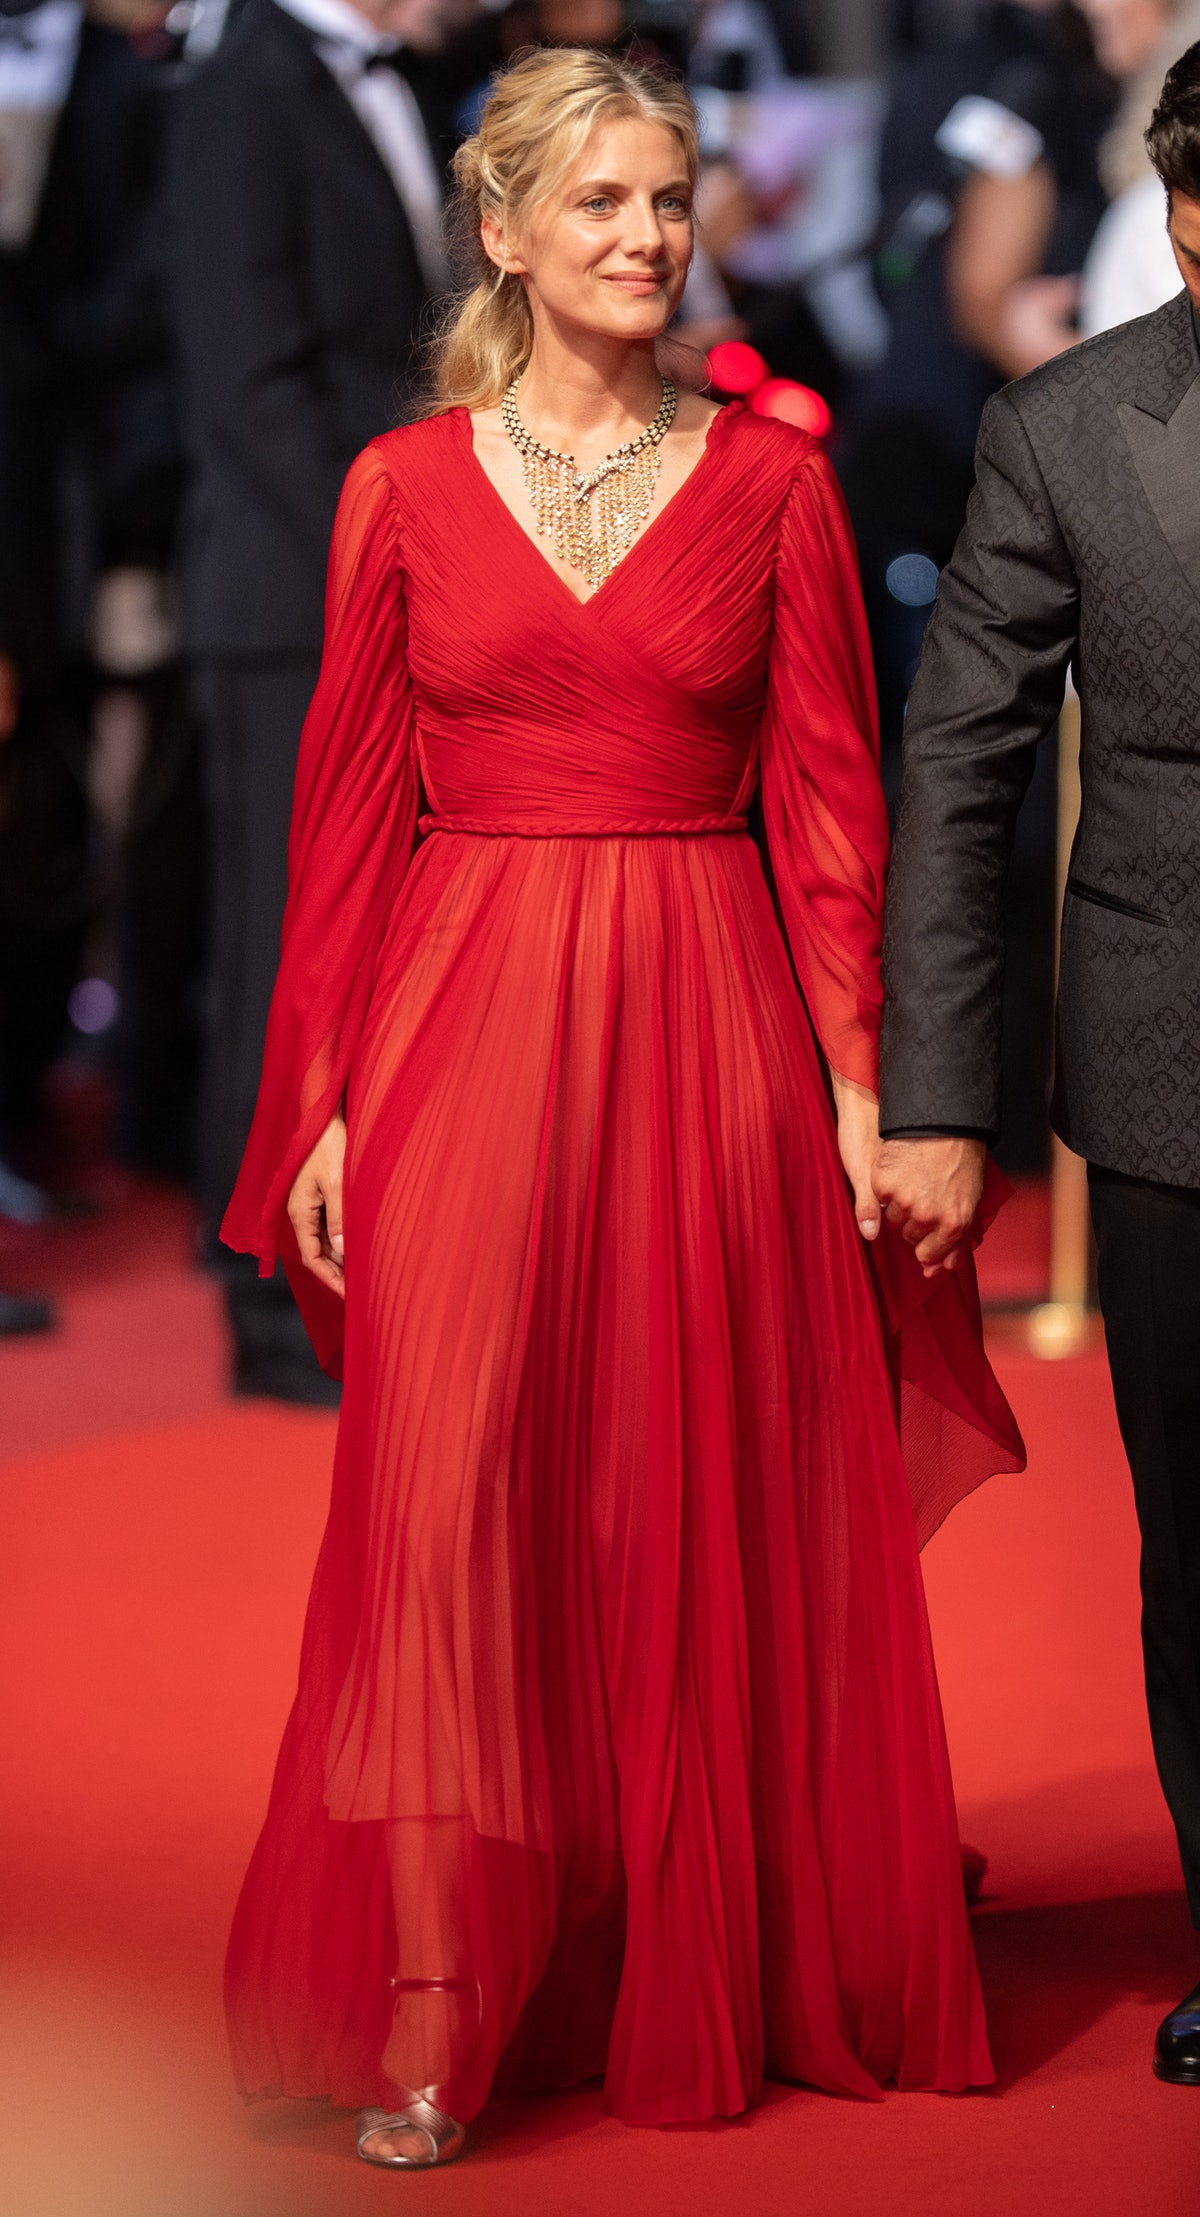 """CANNES, FRANCE - JULY 11: Melanie Laurent attends the """"Flag Day"""" photocall during the 74th annual Cannes Film Festival on July 11, 2021 in Cannes, France. (Photo by Samir Hussein/WireImage)"""